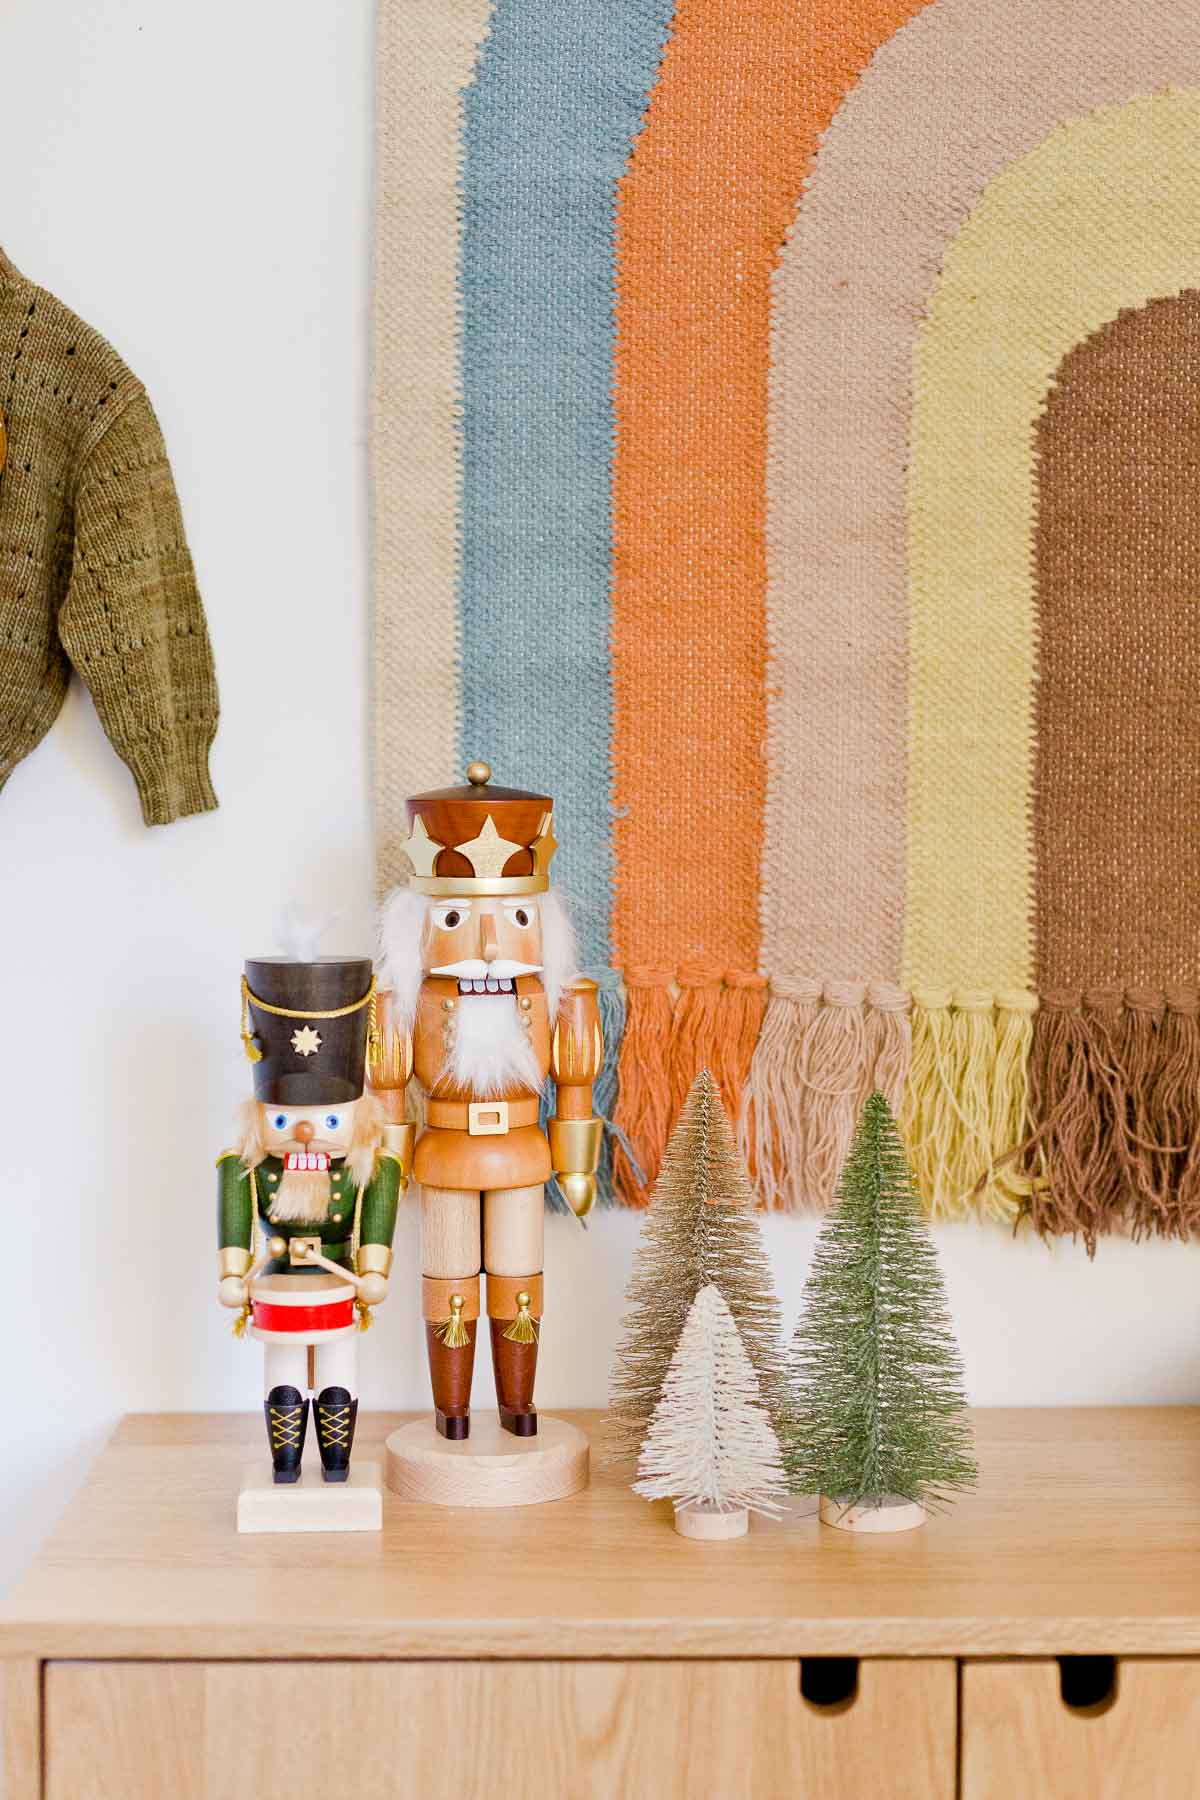 Classic wood nutcrackers for the holidays - decorating a kids room for Christmas!